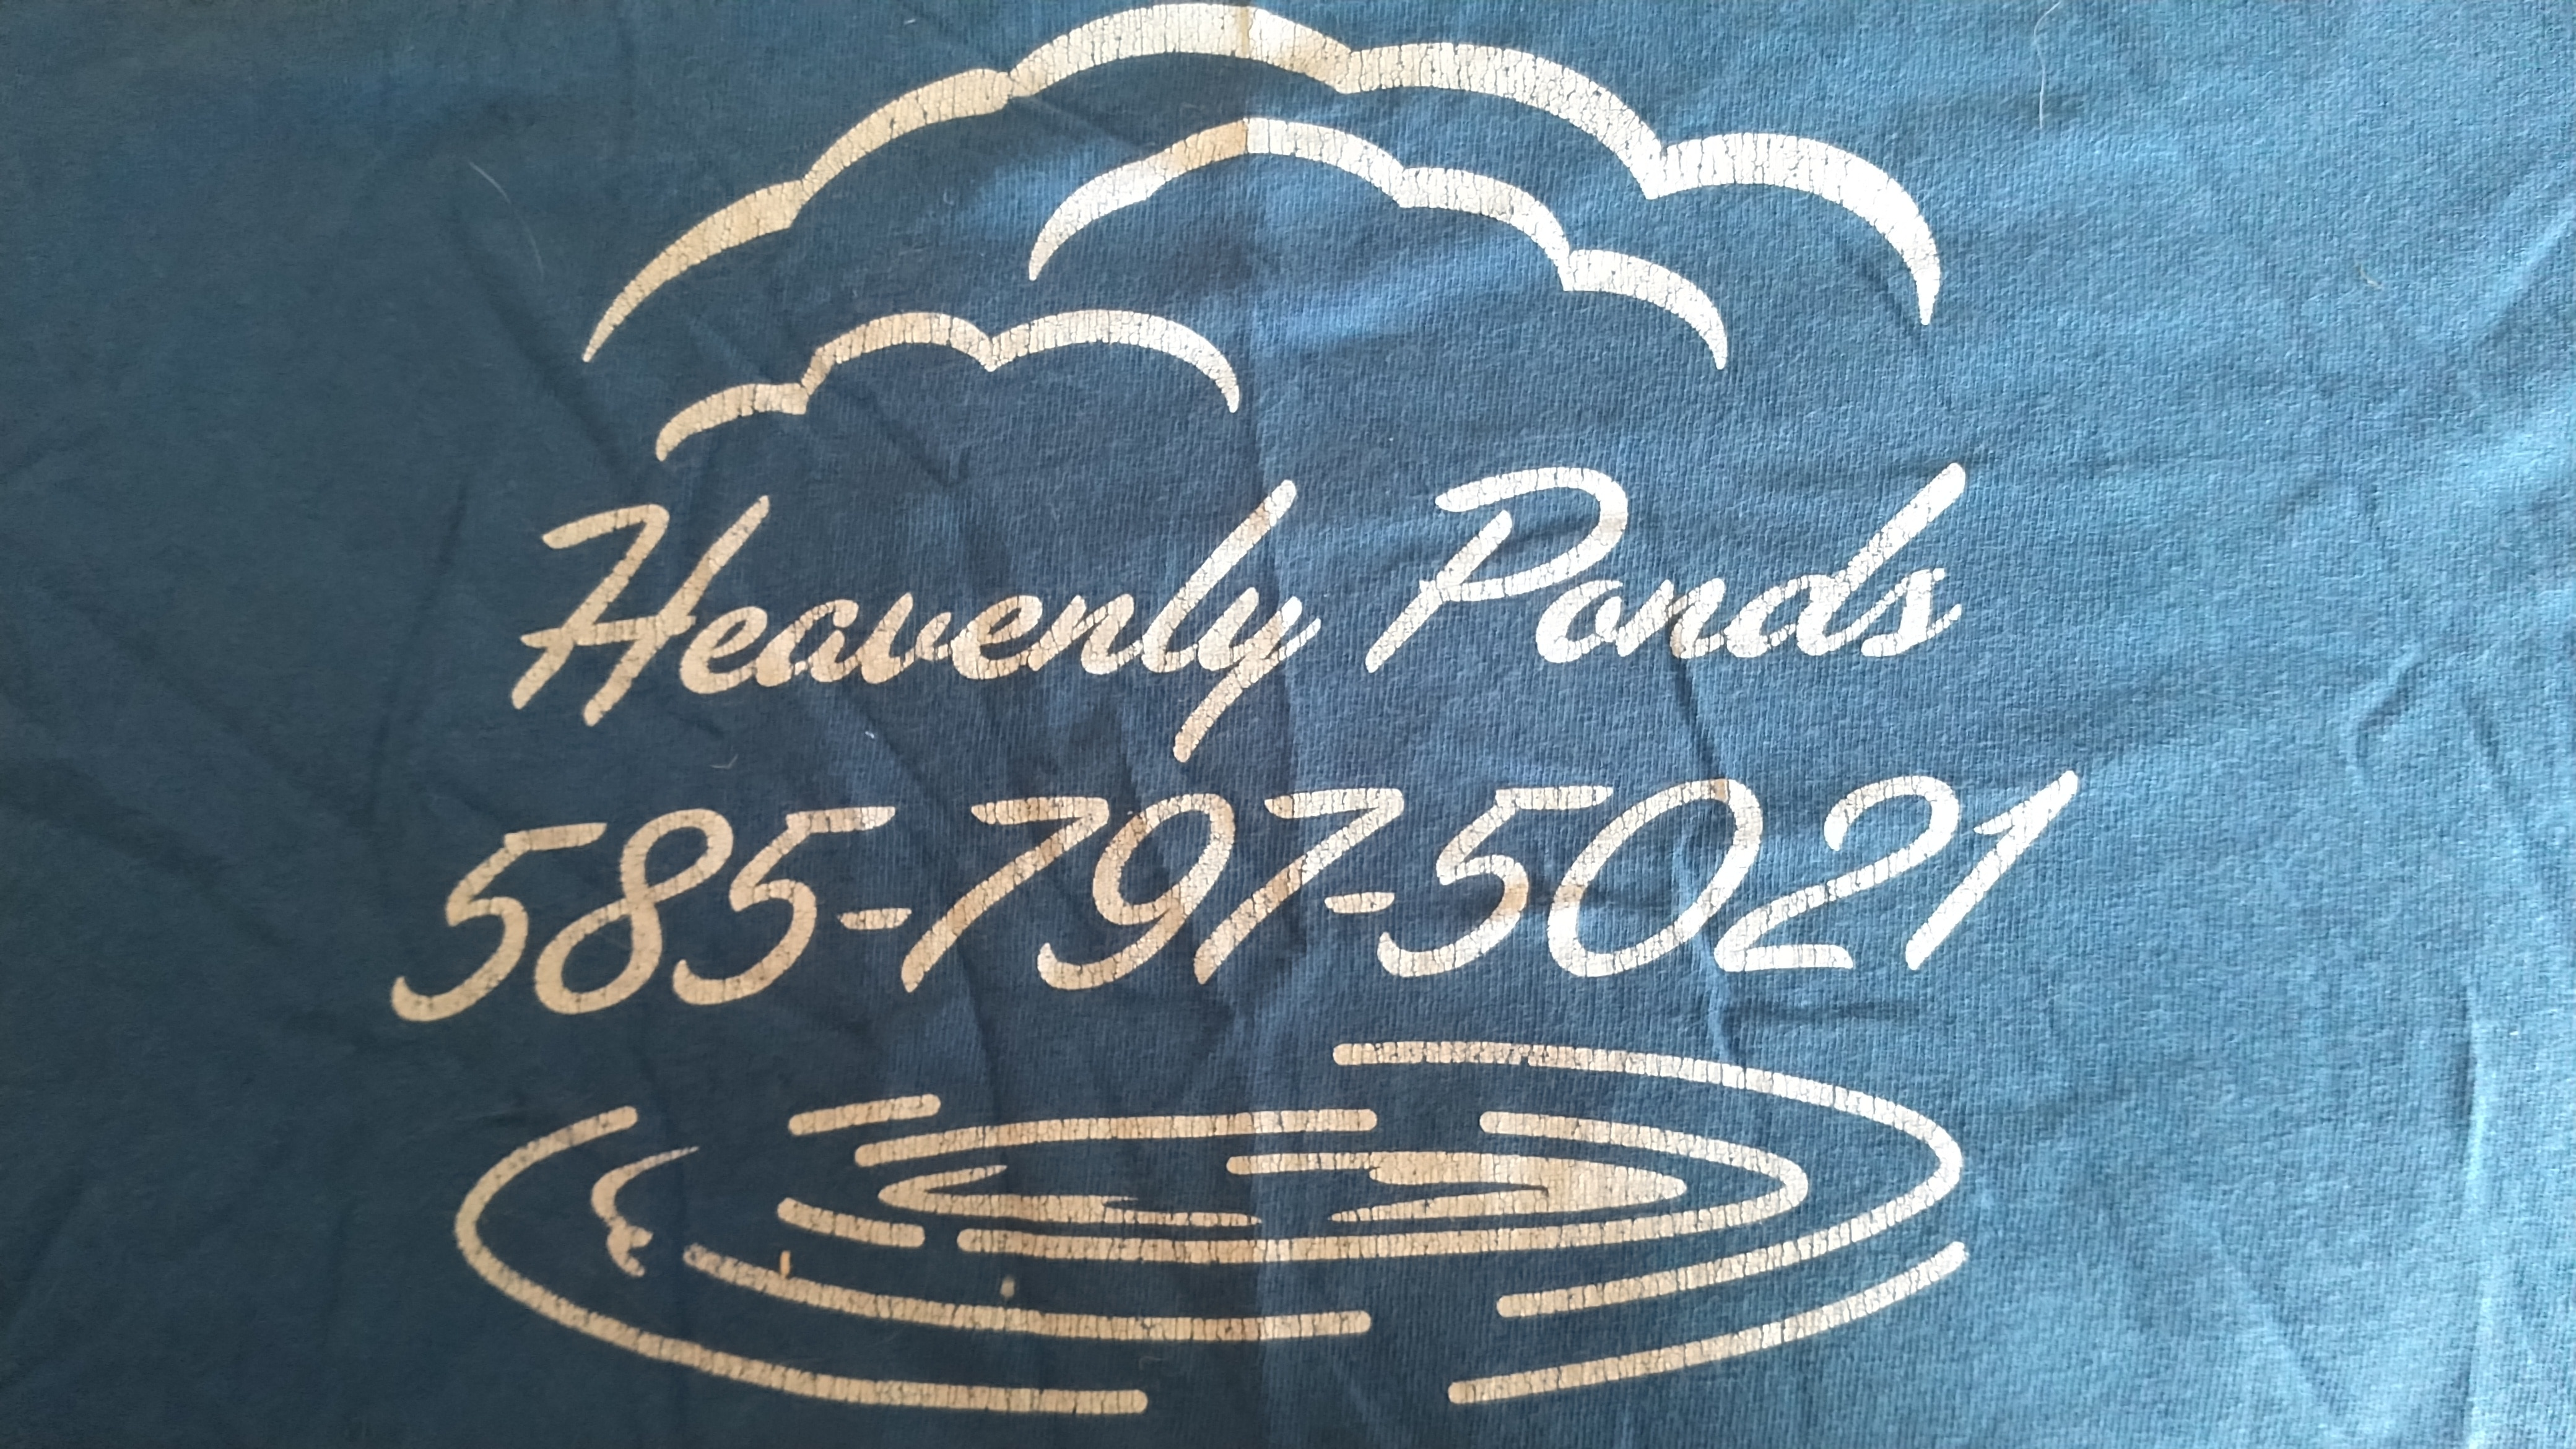 Heavenly Ponds Landscaping and Maintenance logo